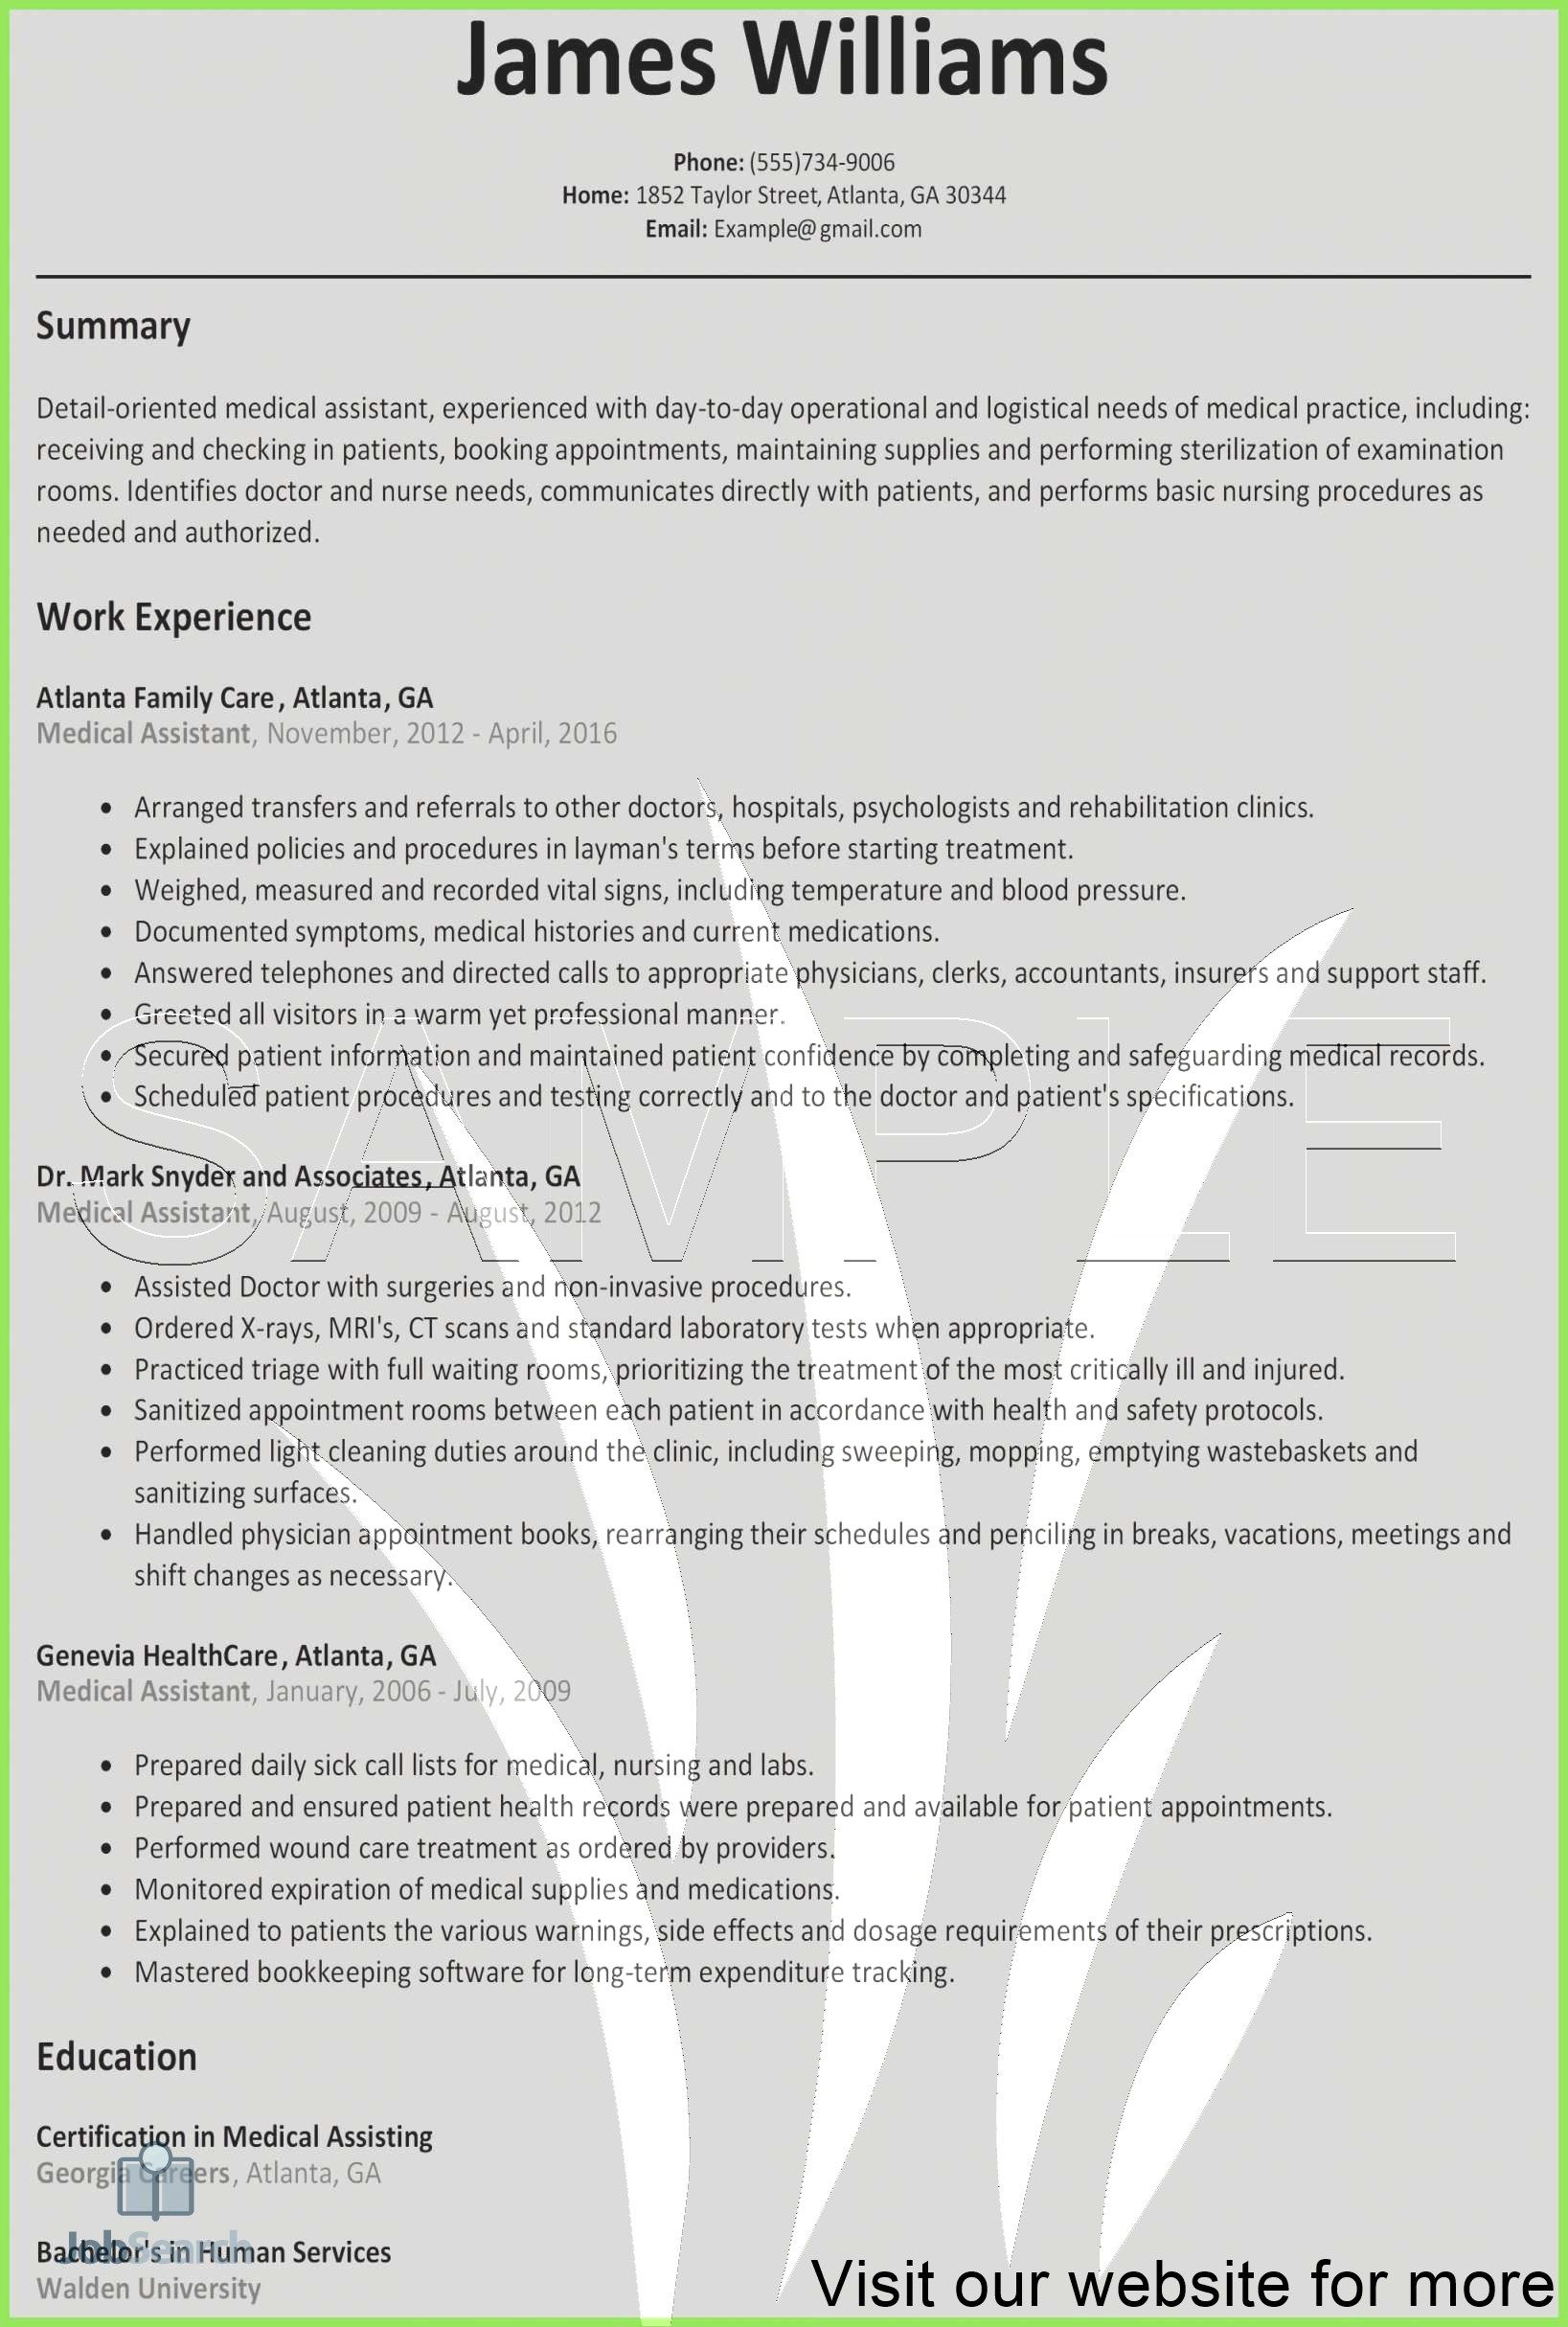 Resume Template Professional Finance In 2020 Resume Template Professional Rn Resume Resume Design Template